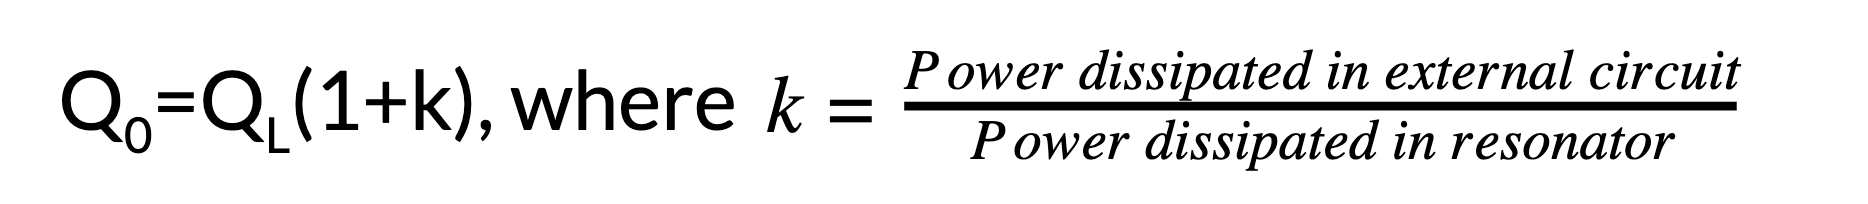 Q0=QL(1+k), where k=Power dissipated in external circuitPower dissipated in resonator